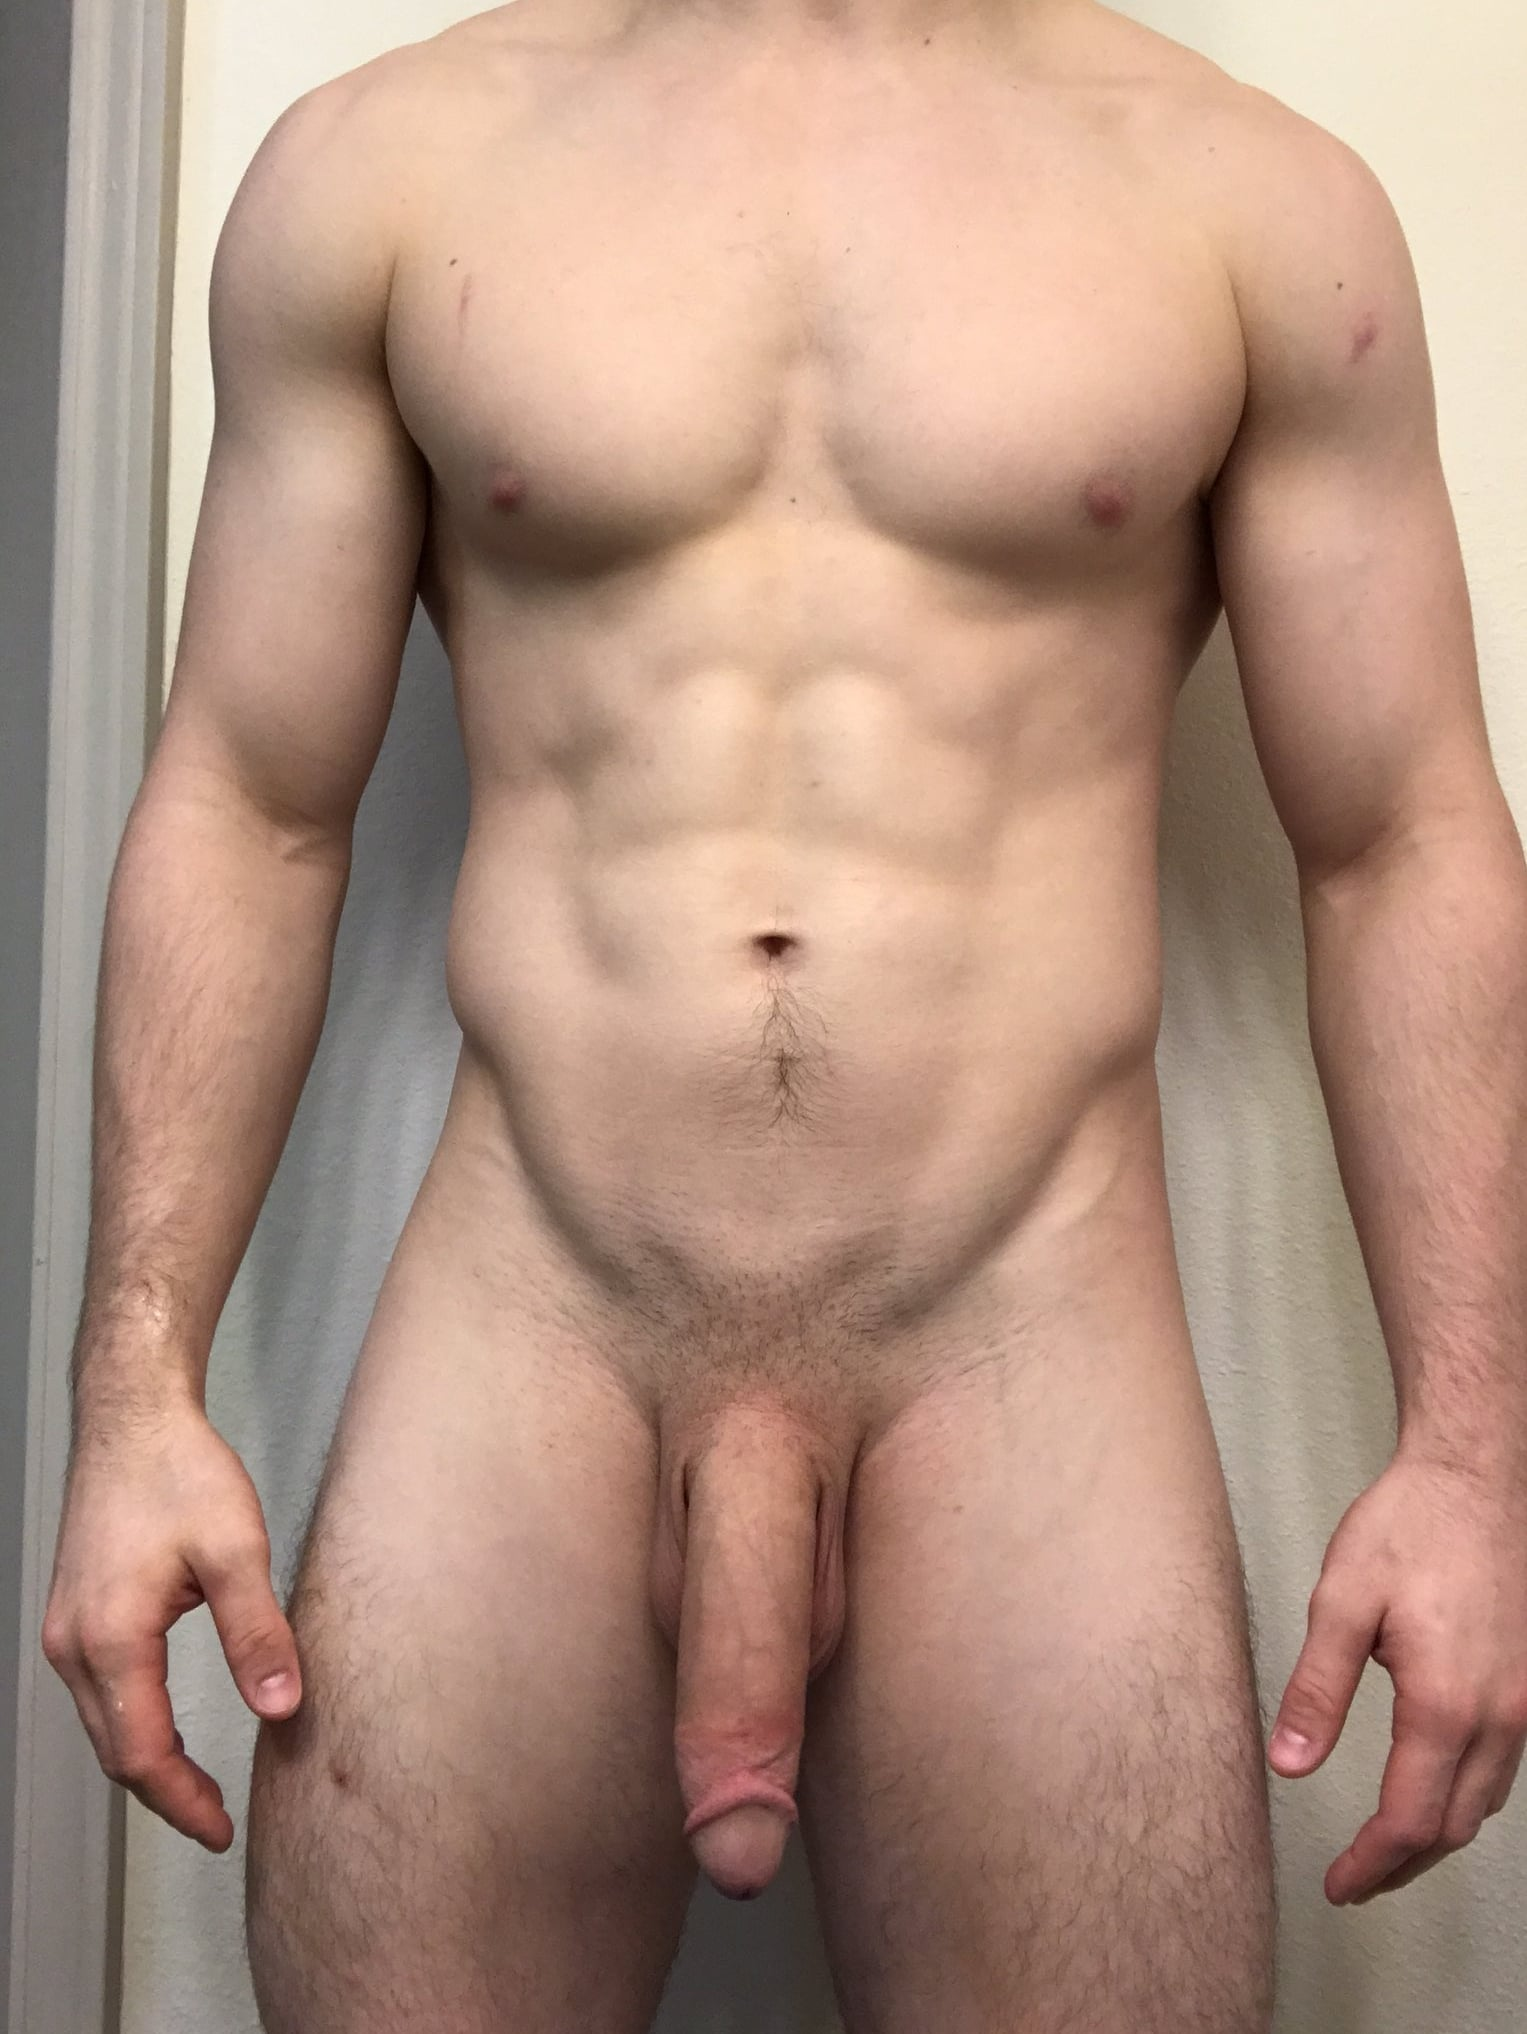 Hung nude hunk taking a selfie